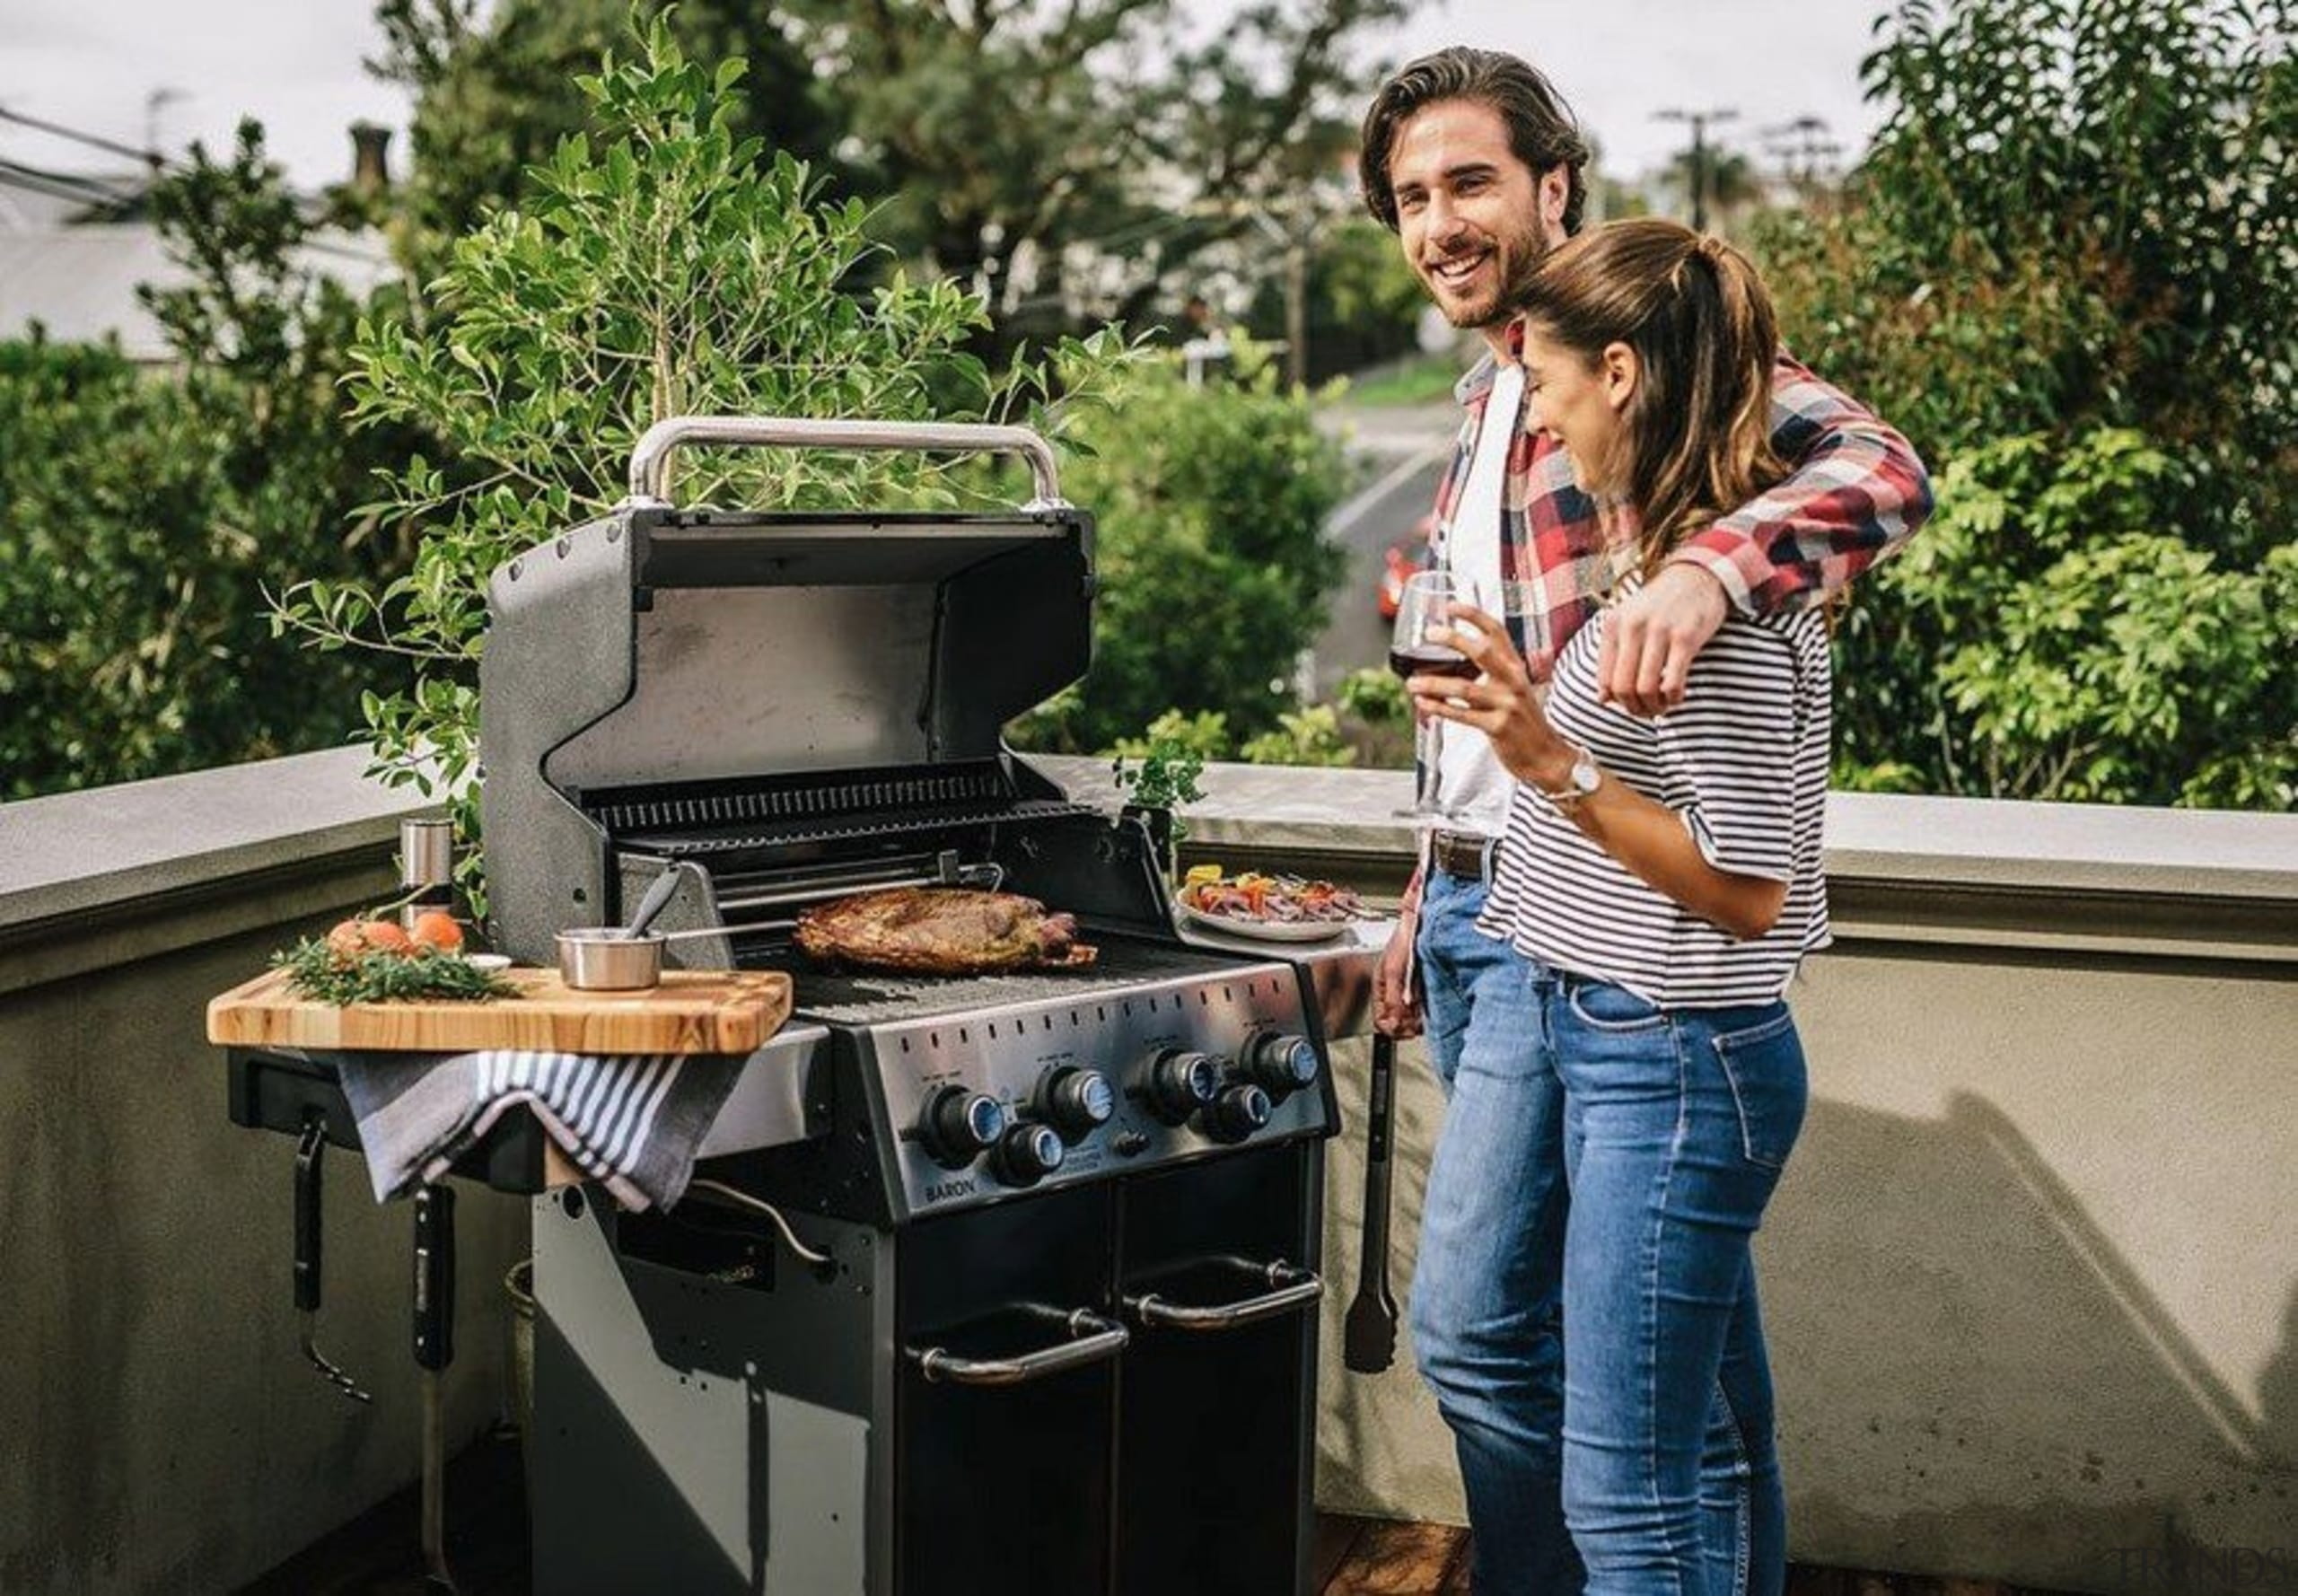 Broil King BBQs - barbecue | barbecue grill barbecue, barbecue grill, cuisine, food, grilling, kitchen appliance, outdoor grill, black